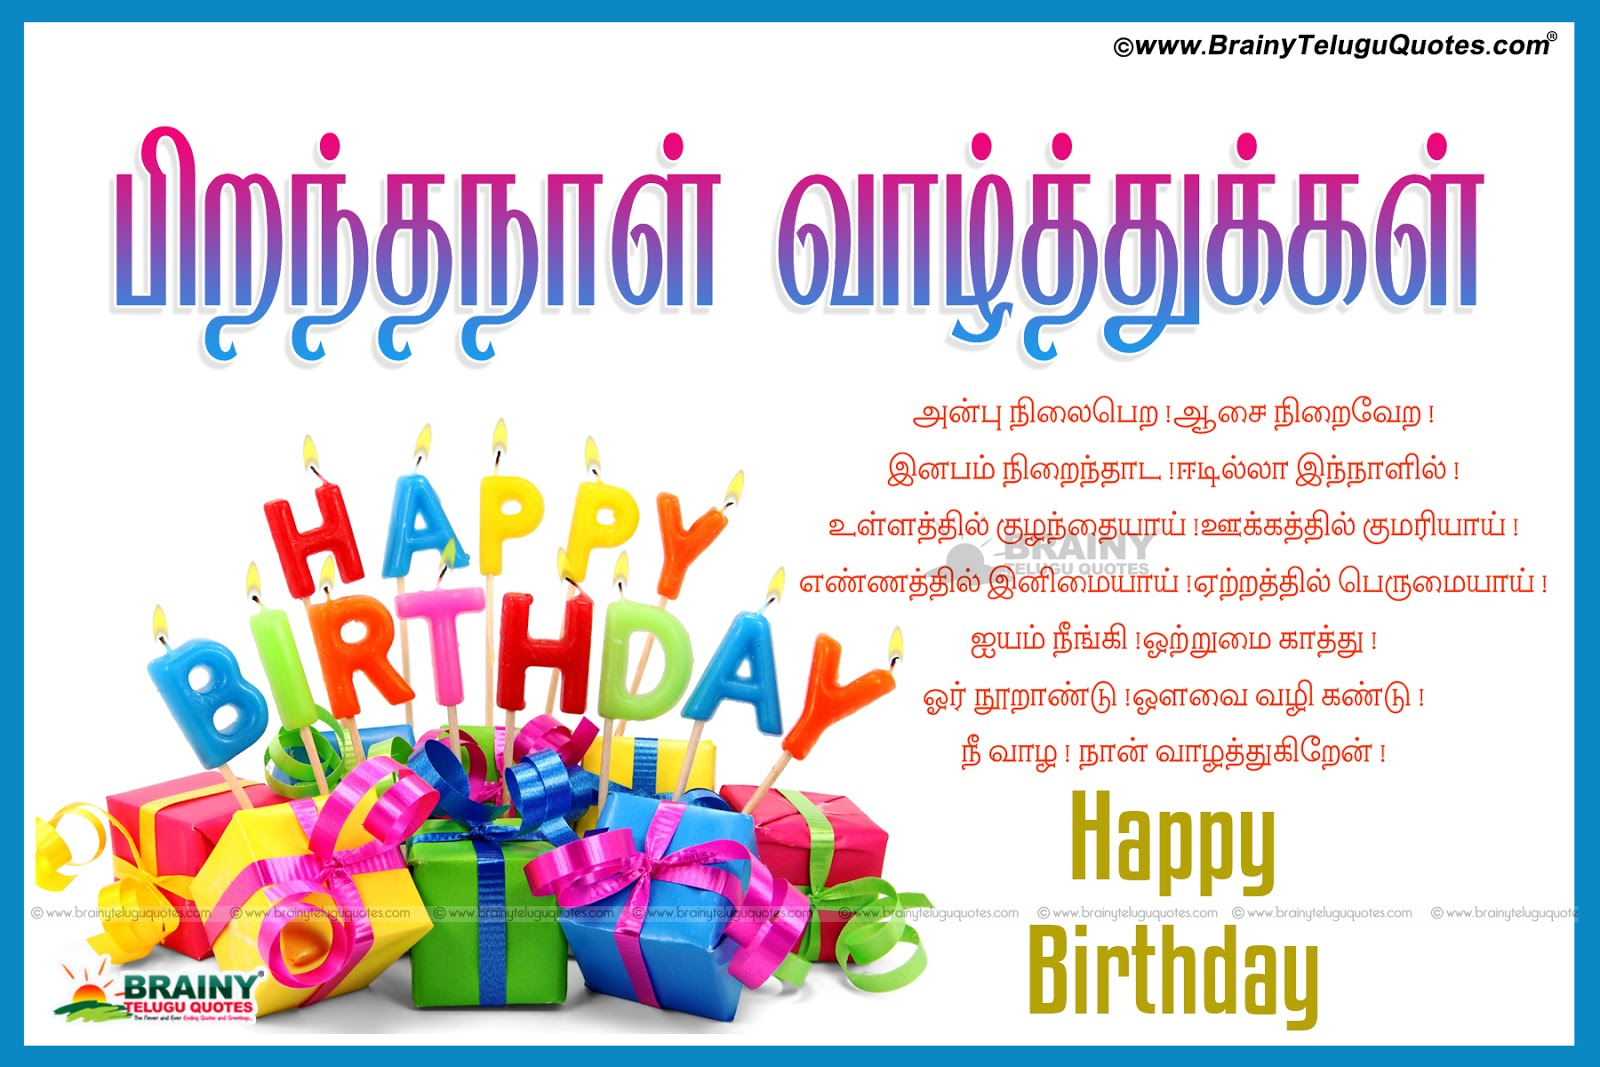 happy birthday wishes for friend message in tamil happy 252bbithday252bgreeting252bquotes